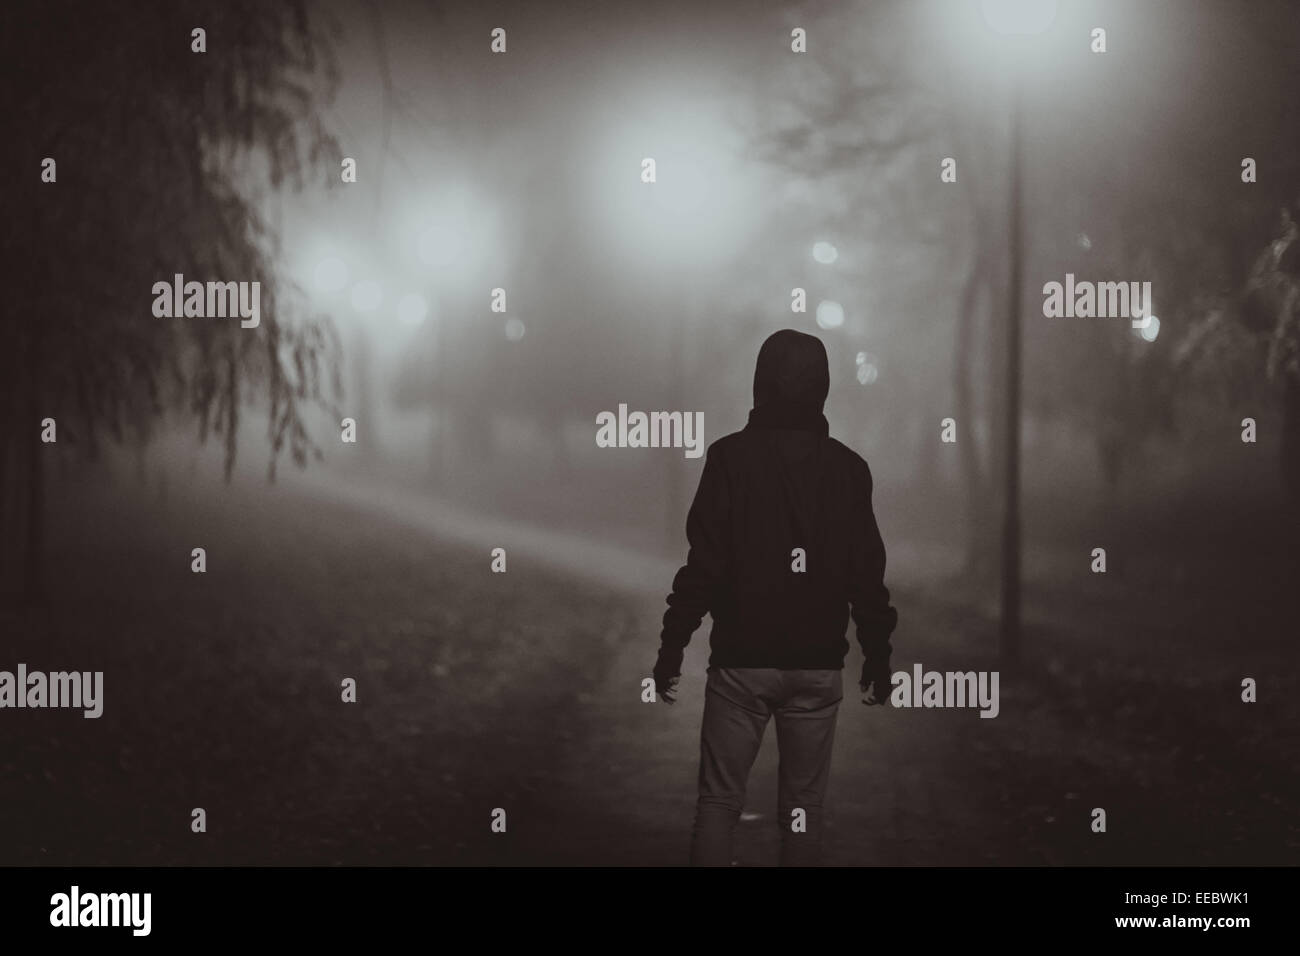 horror lighting. Horror Scene Of A Autumn Fog. LIGHTING FILM NOIR STYLE Lighting